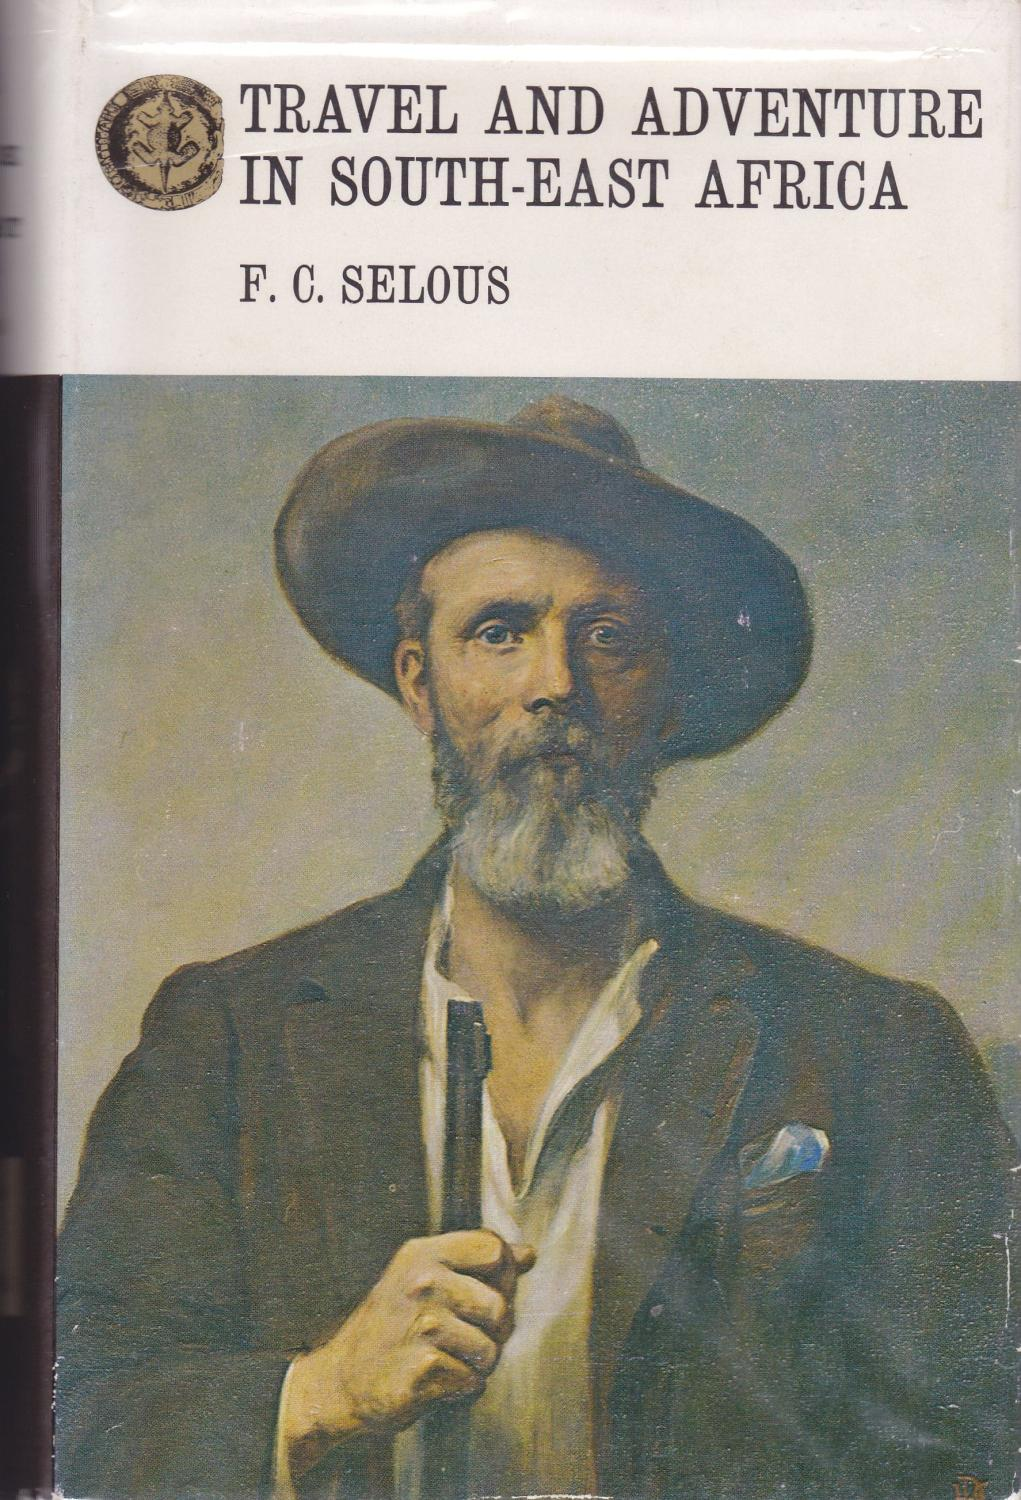 Travel and Adventure in South-east Africa F. C. Selous Near Fine Hardcover